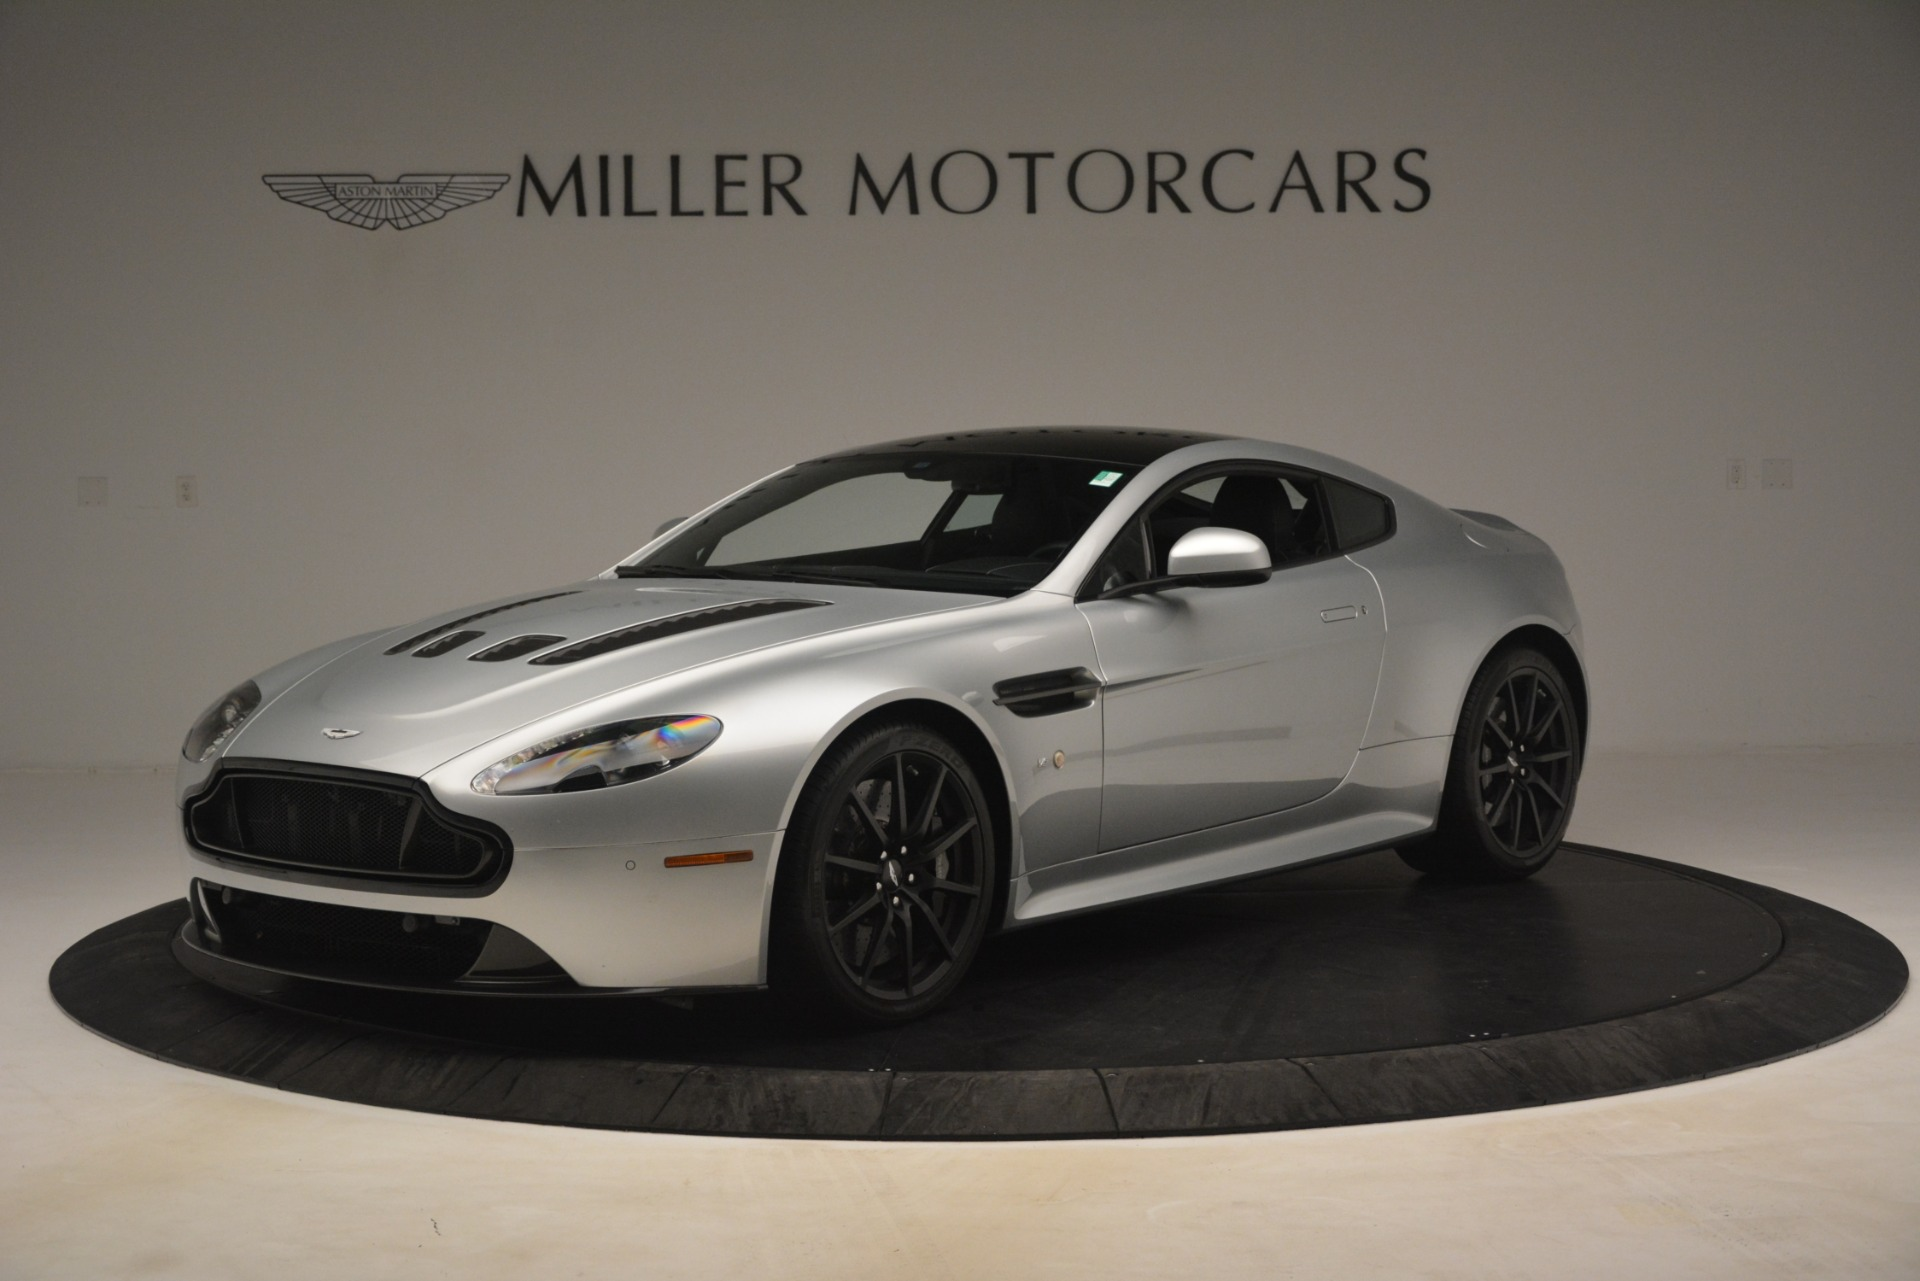 Used 2015 Aston Martin V12 Vantage S Coupe for sale Sold at McLaren Greenwich in Greenwich CT 06830 1